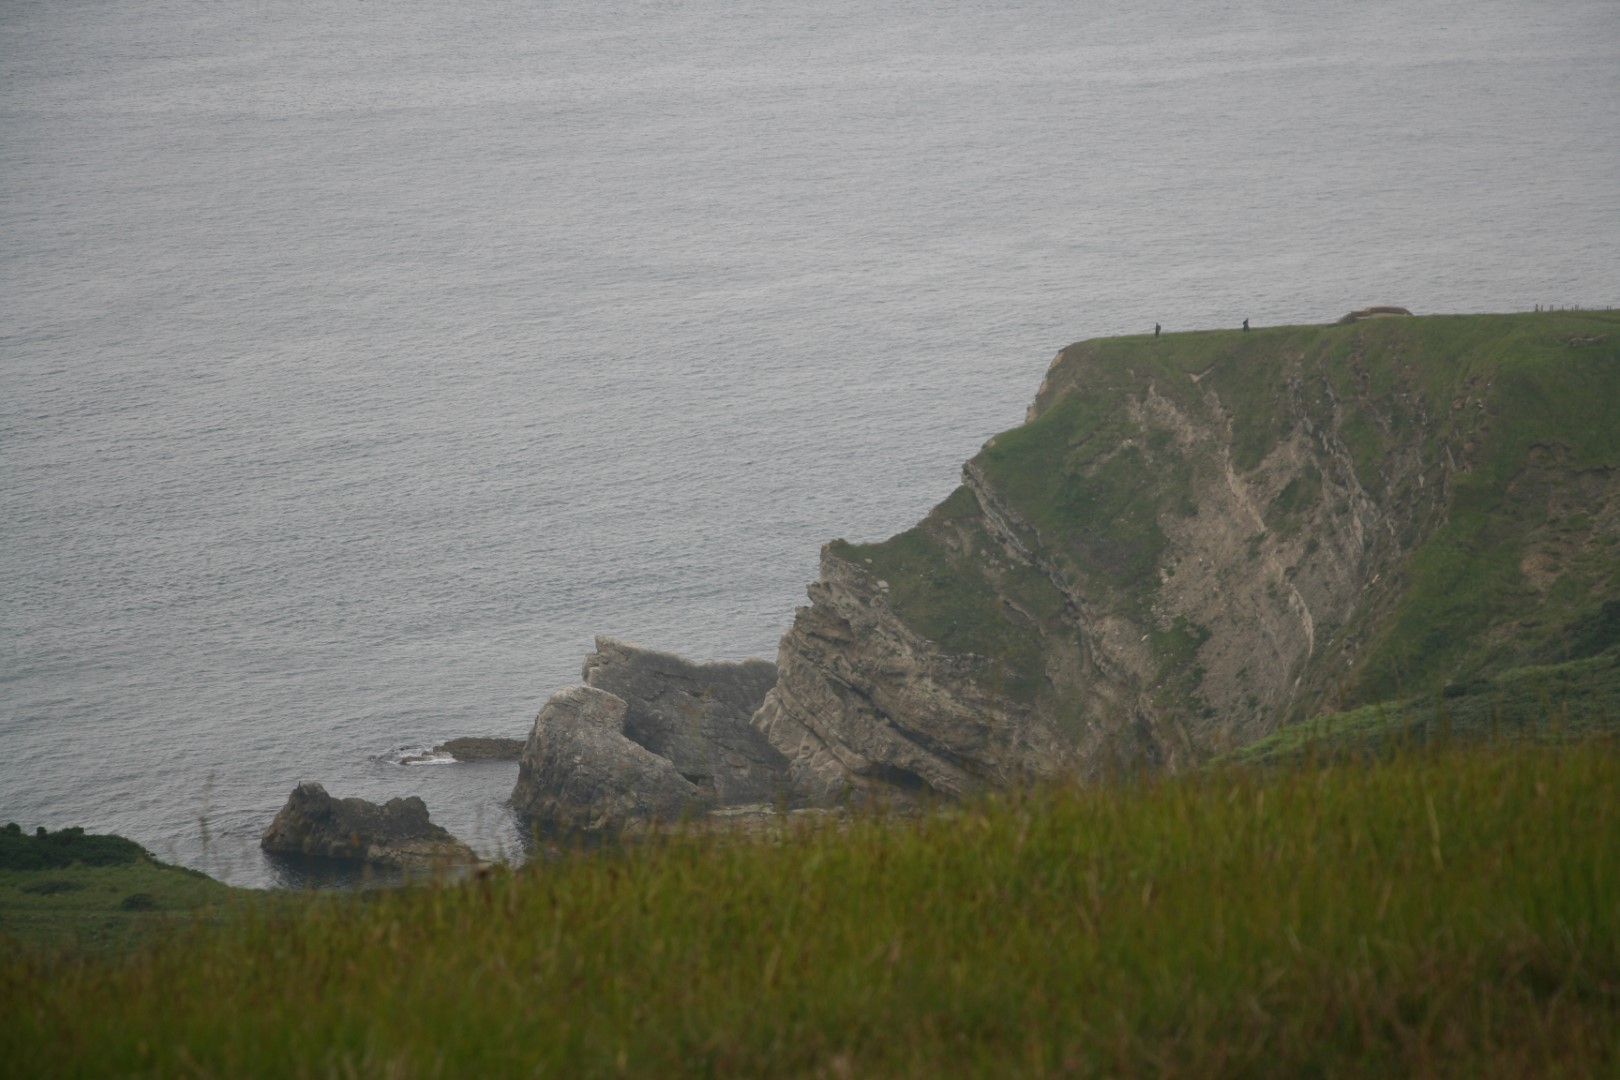 People in the distance to show the scale of the cliffs.